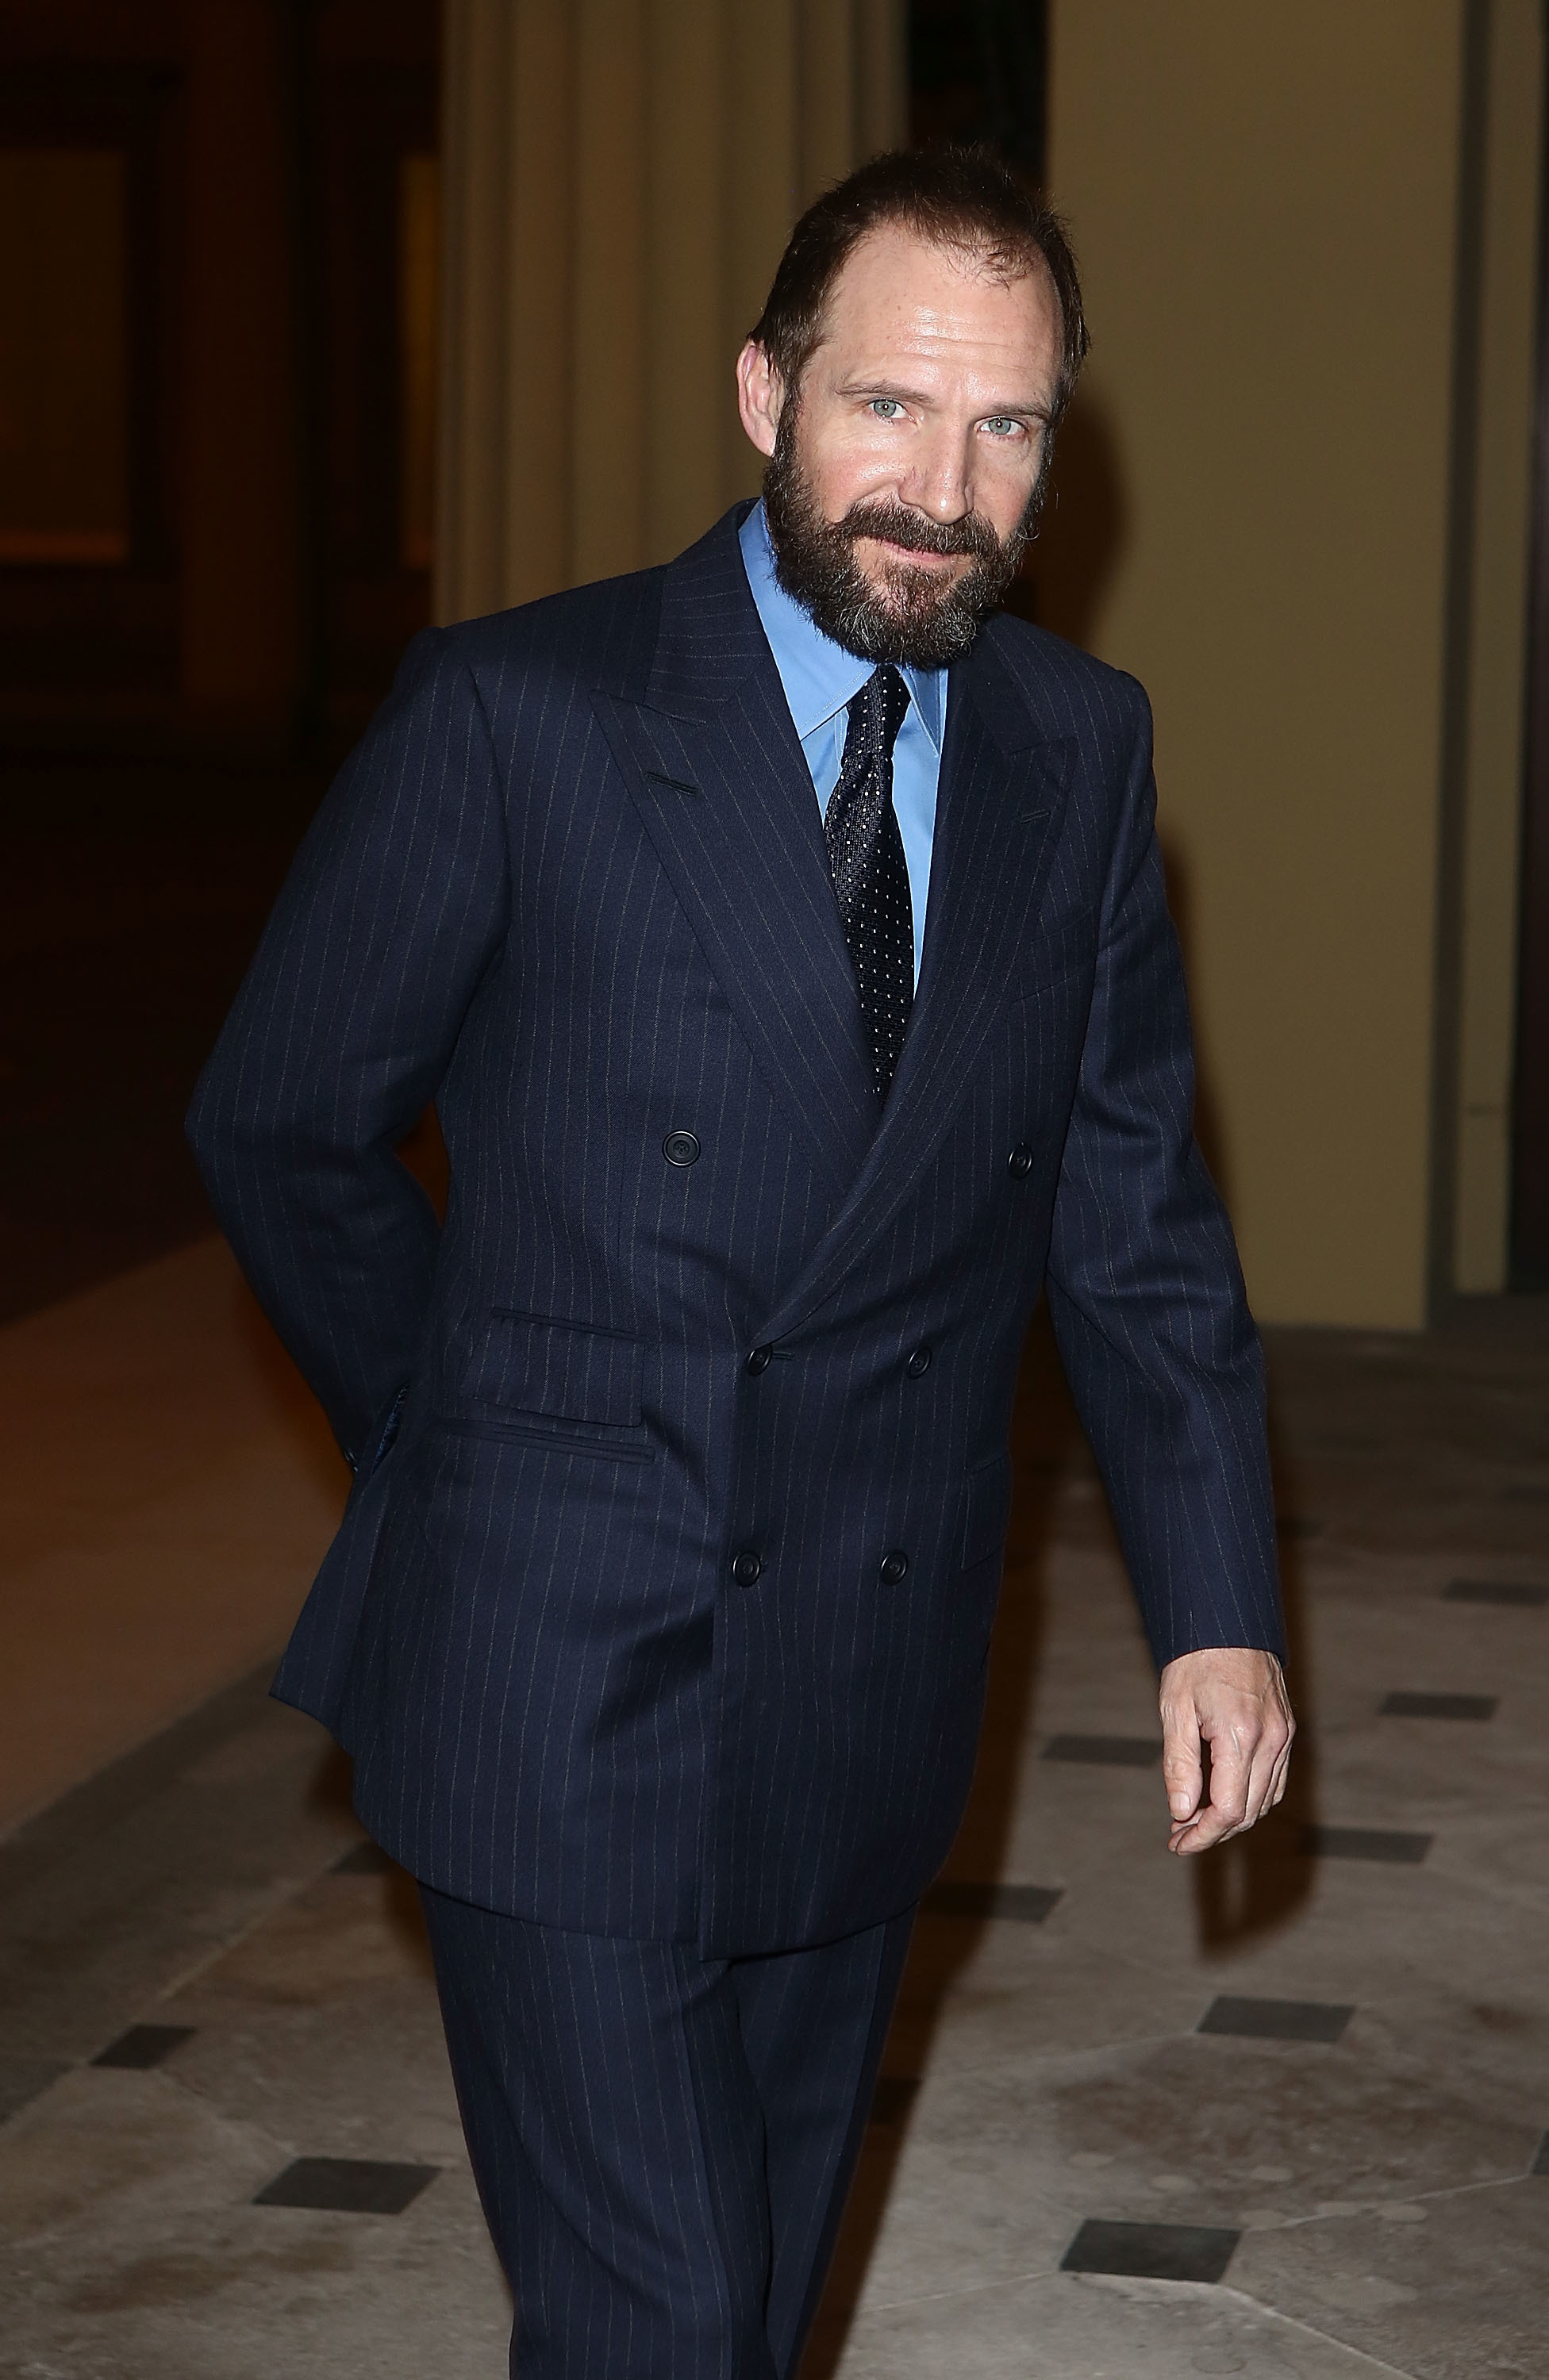 Black dress navy suit - Tap Into Refined Elegant Style With A Dark Blue Suit And A Blue Dress Shirt